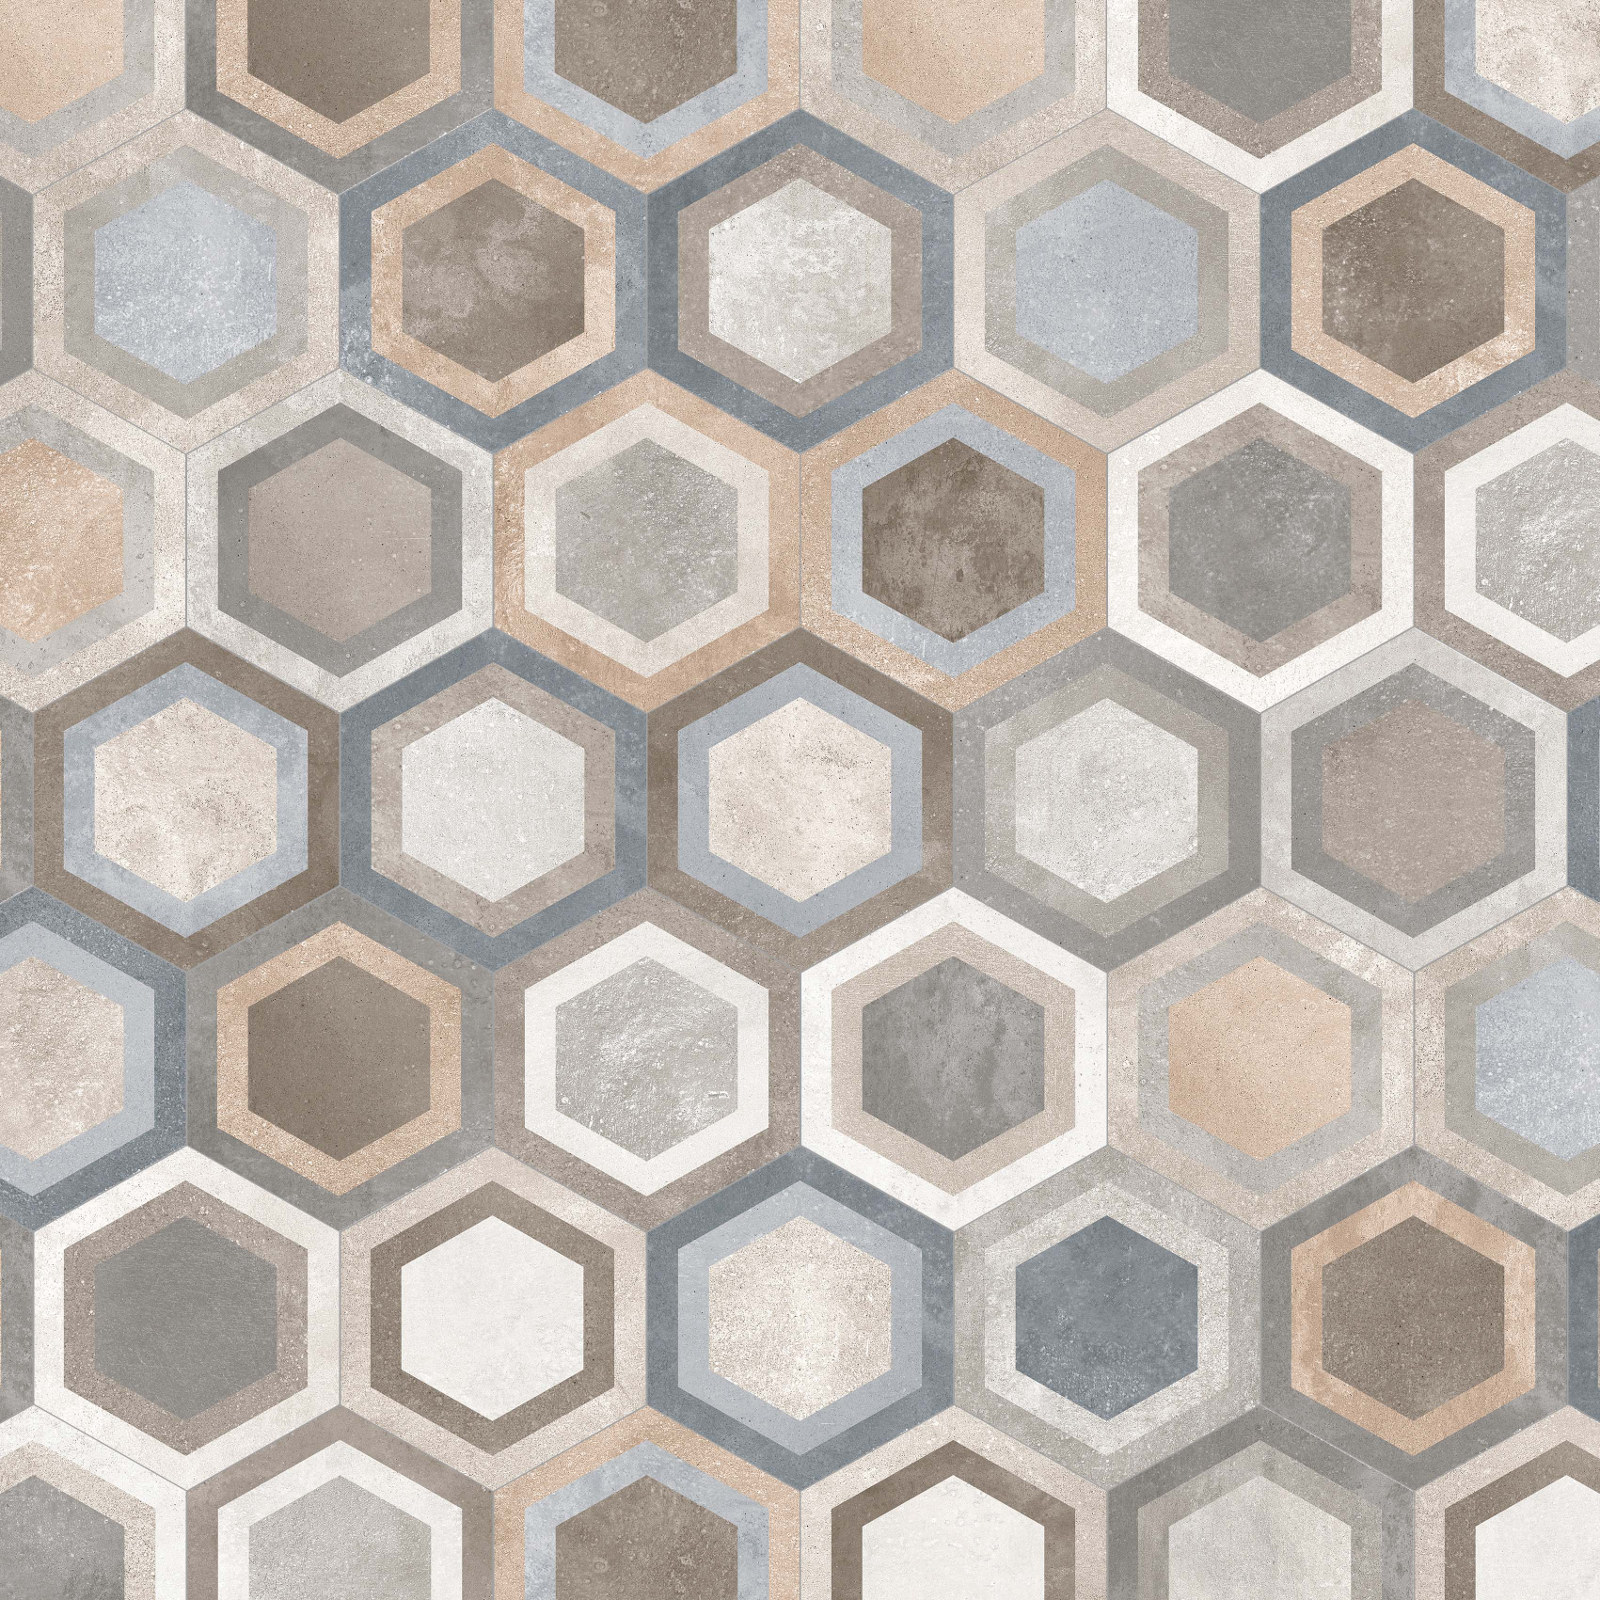 1 Hexagon Ceramic Tile